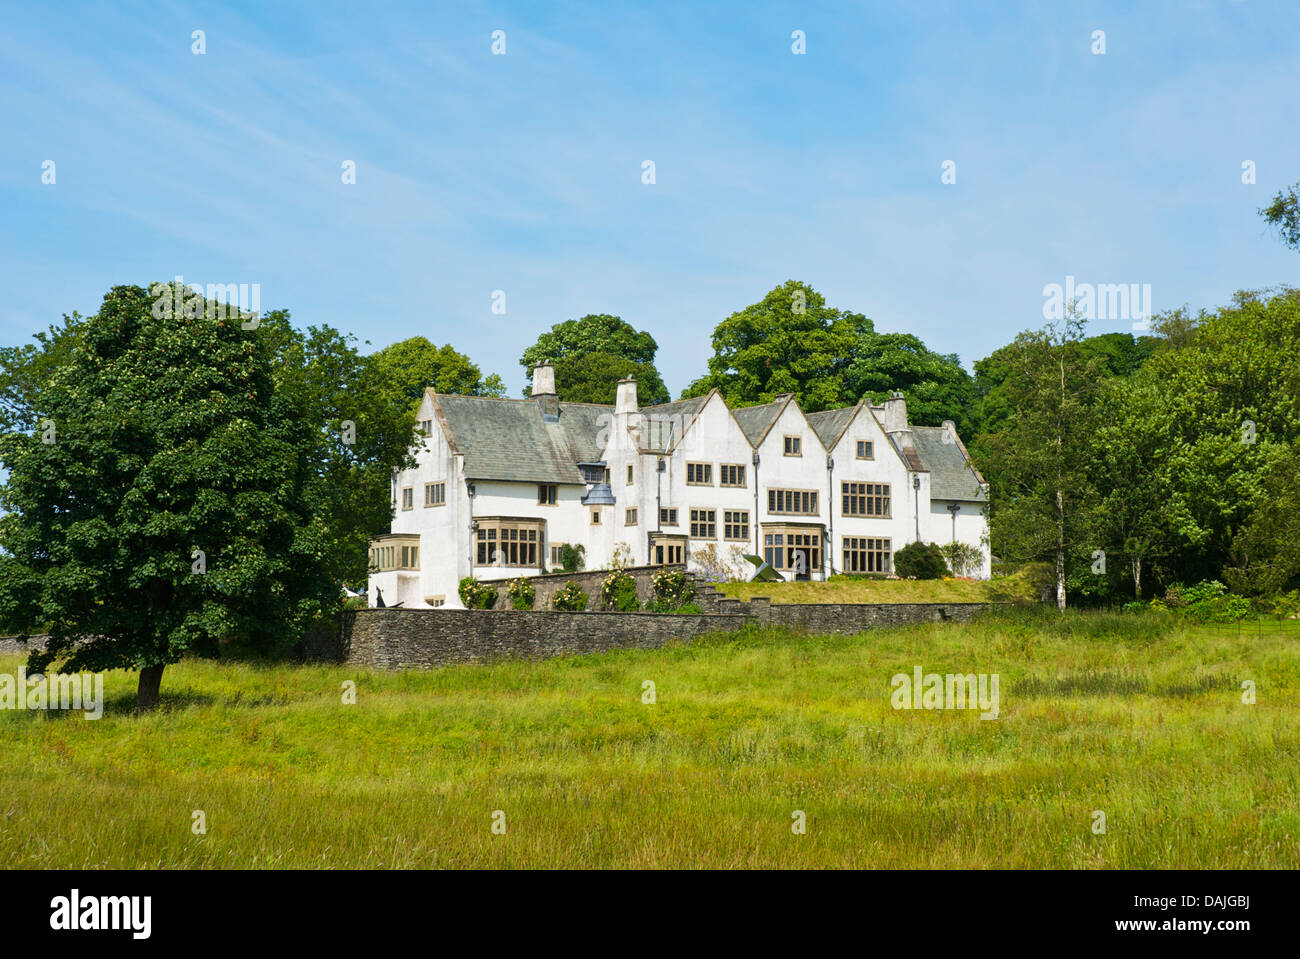 Blackwell, 'arts and crafts' house, overlooking Lake Windermere, near Bowness, Cumbria, England UK - Stock Image